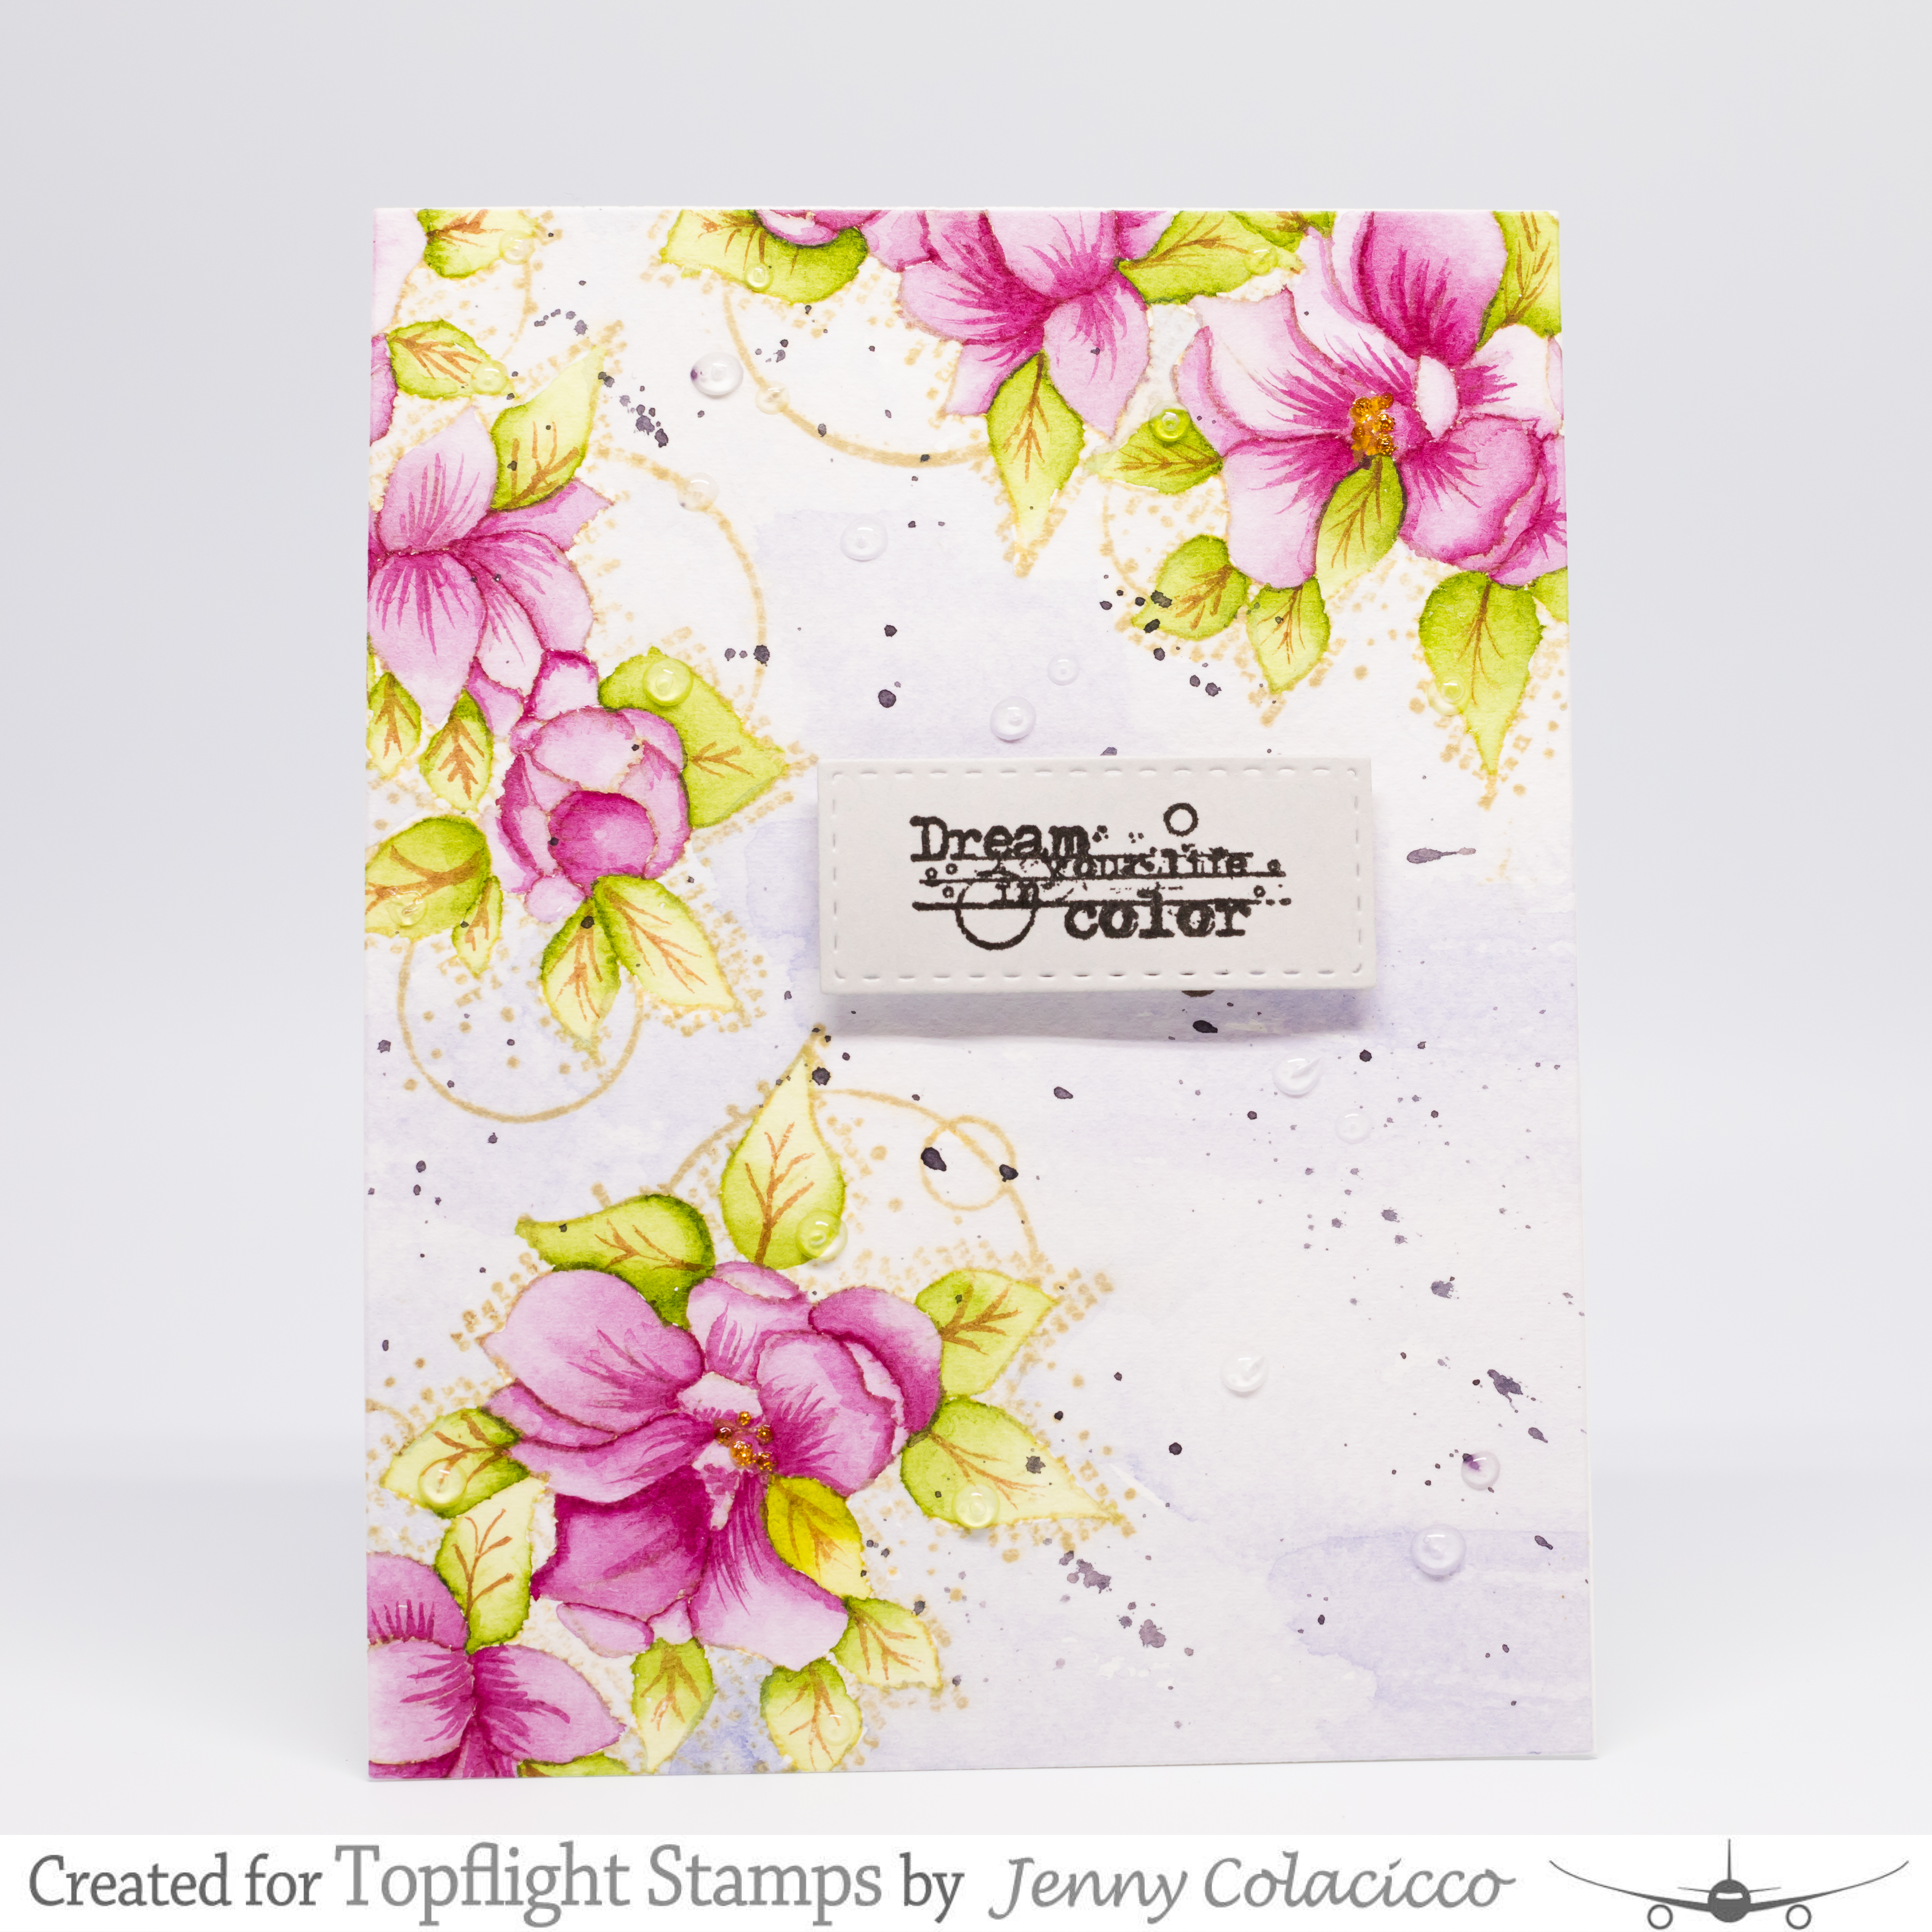 Topflight Stamps Dream Your Life In Color No Line Watercolor